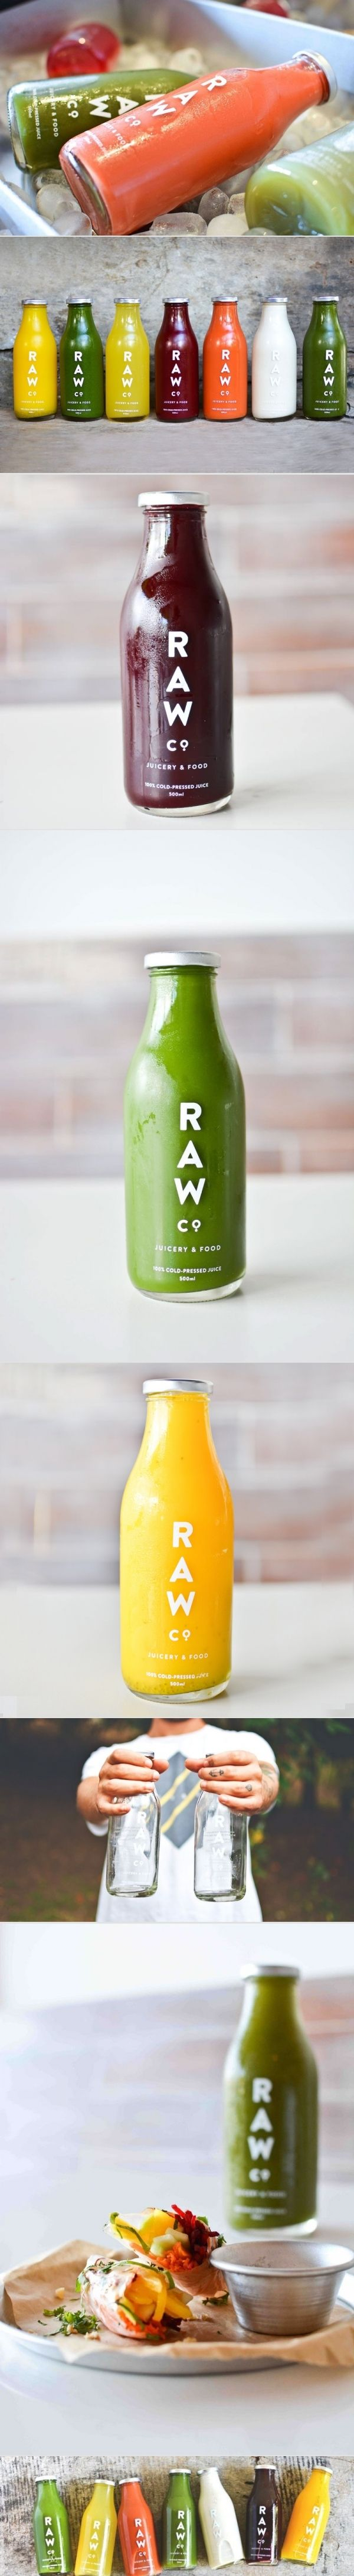 Raw Co. Juicery & Food. This will grabs the attention of every passerby…